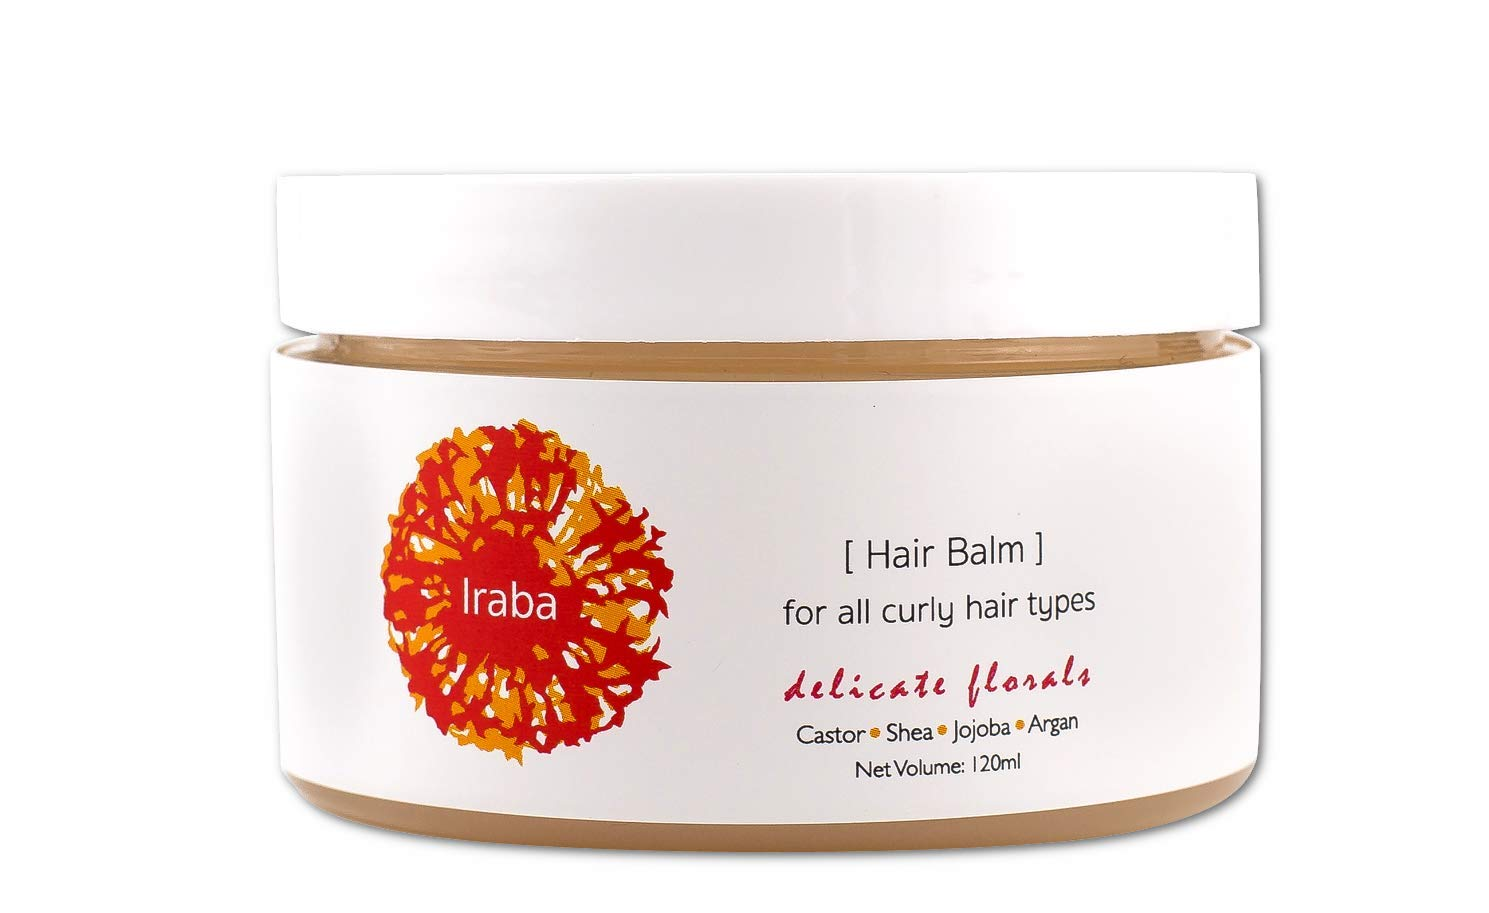 Iraba Hair Balm - Natural Curly Hair Care Oil by Iraba Cosmetics - For All Curly Hair Types - Water Free